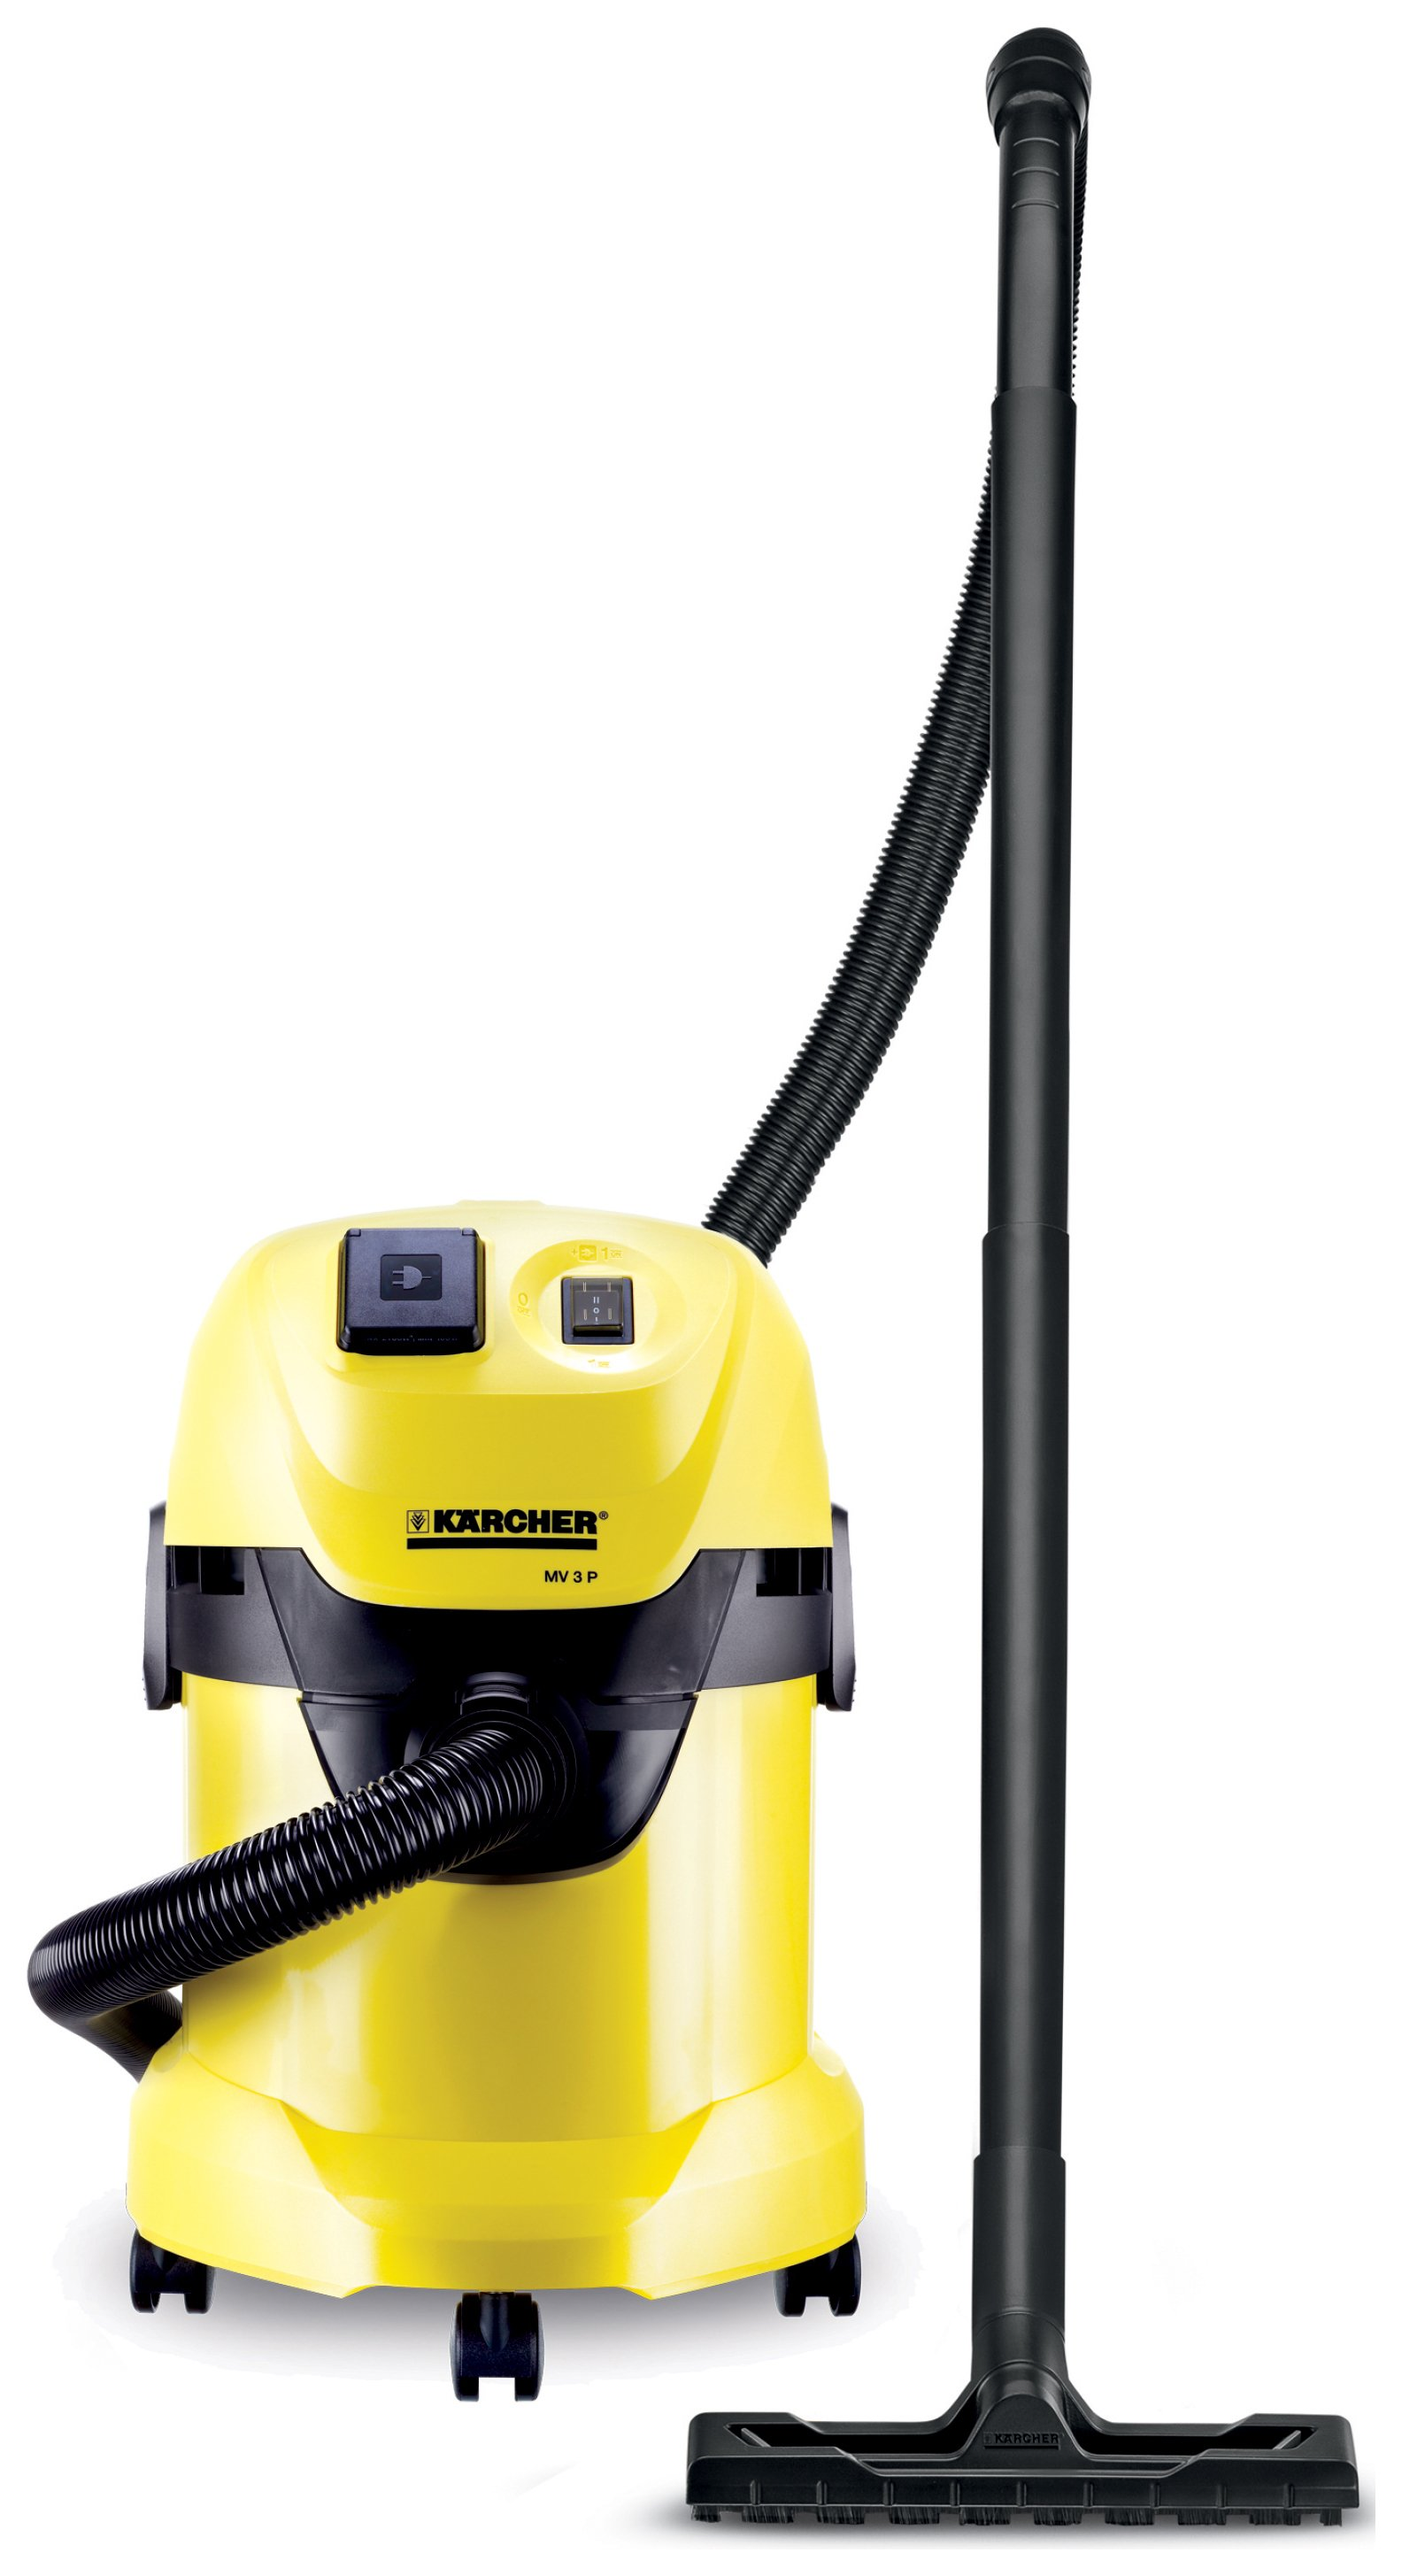 karcher wd3 p diy wet and dry vacuum cleaner. Black Bedroom Furniture Sets. Home Design Ideas